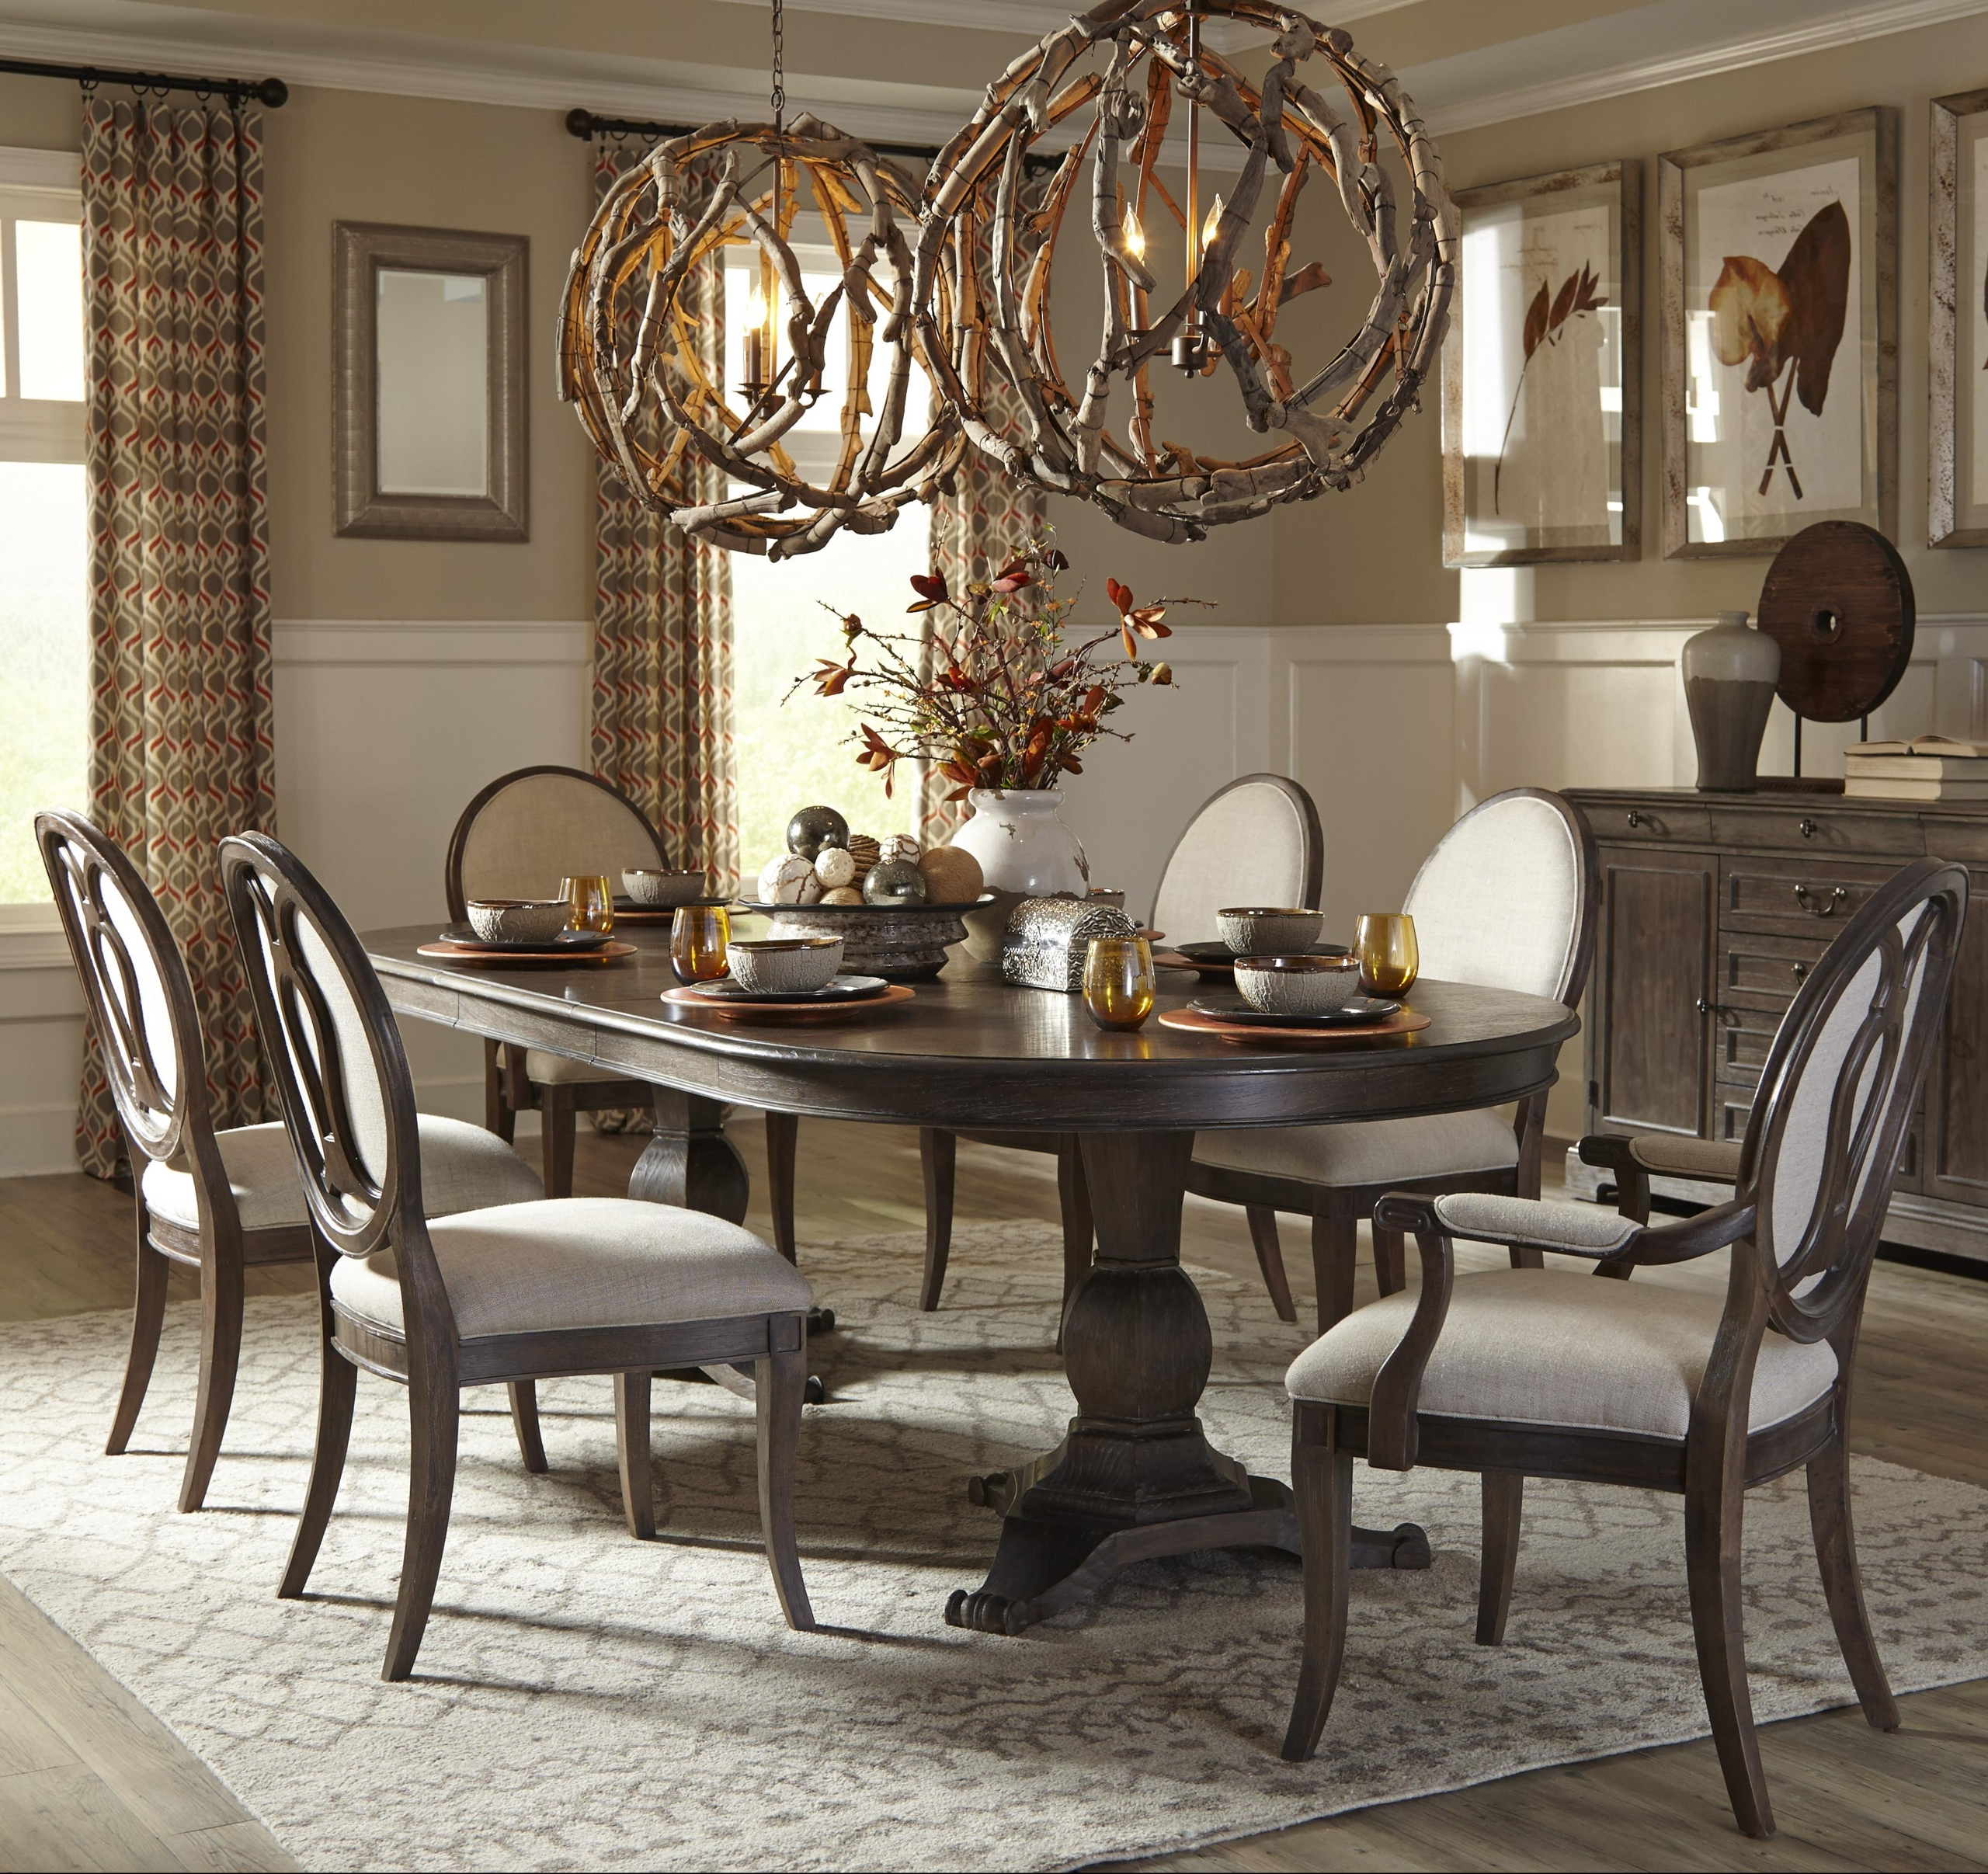 Current 50+ Double Pedestal Dining Table You'll Love In 2020 Within Sevinc Pedestal Dining Tables (View 16 of 25)